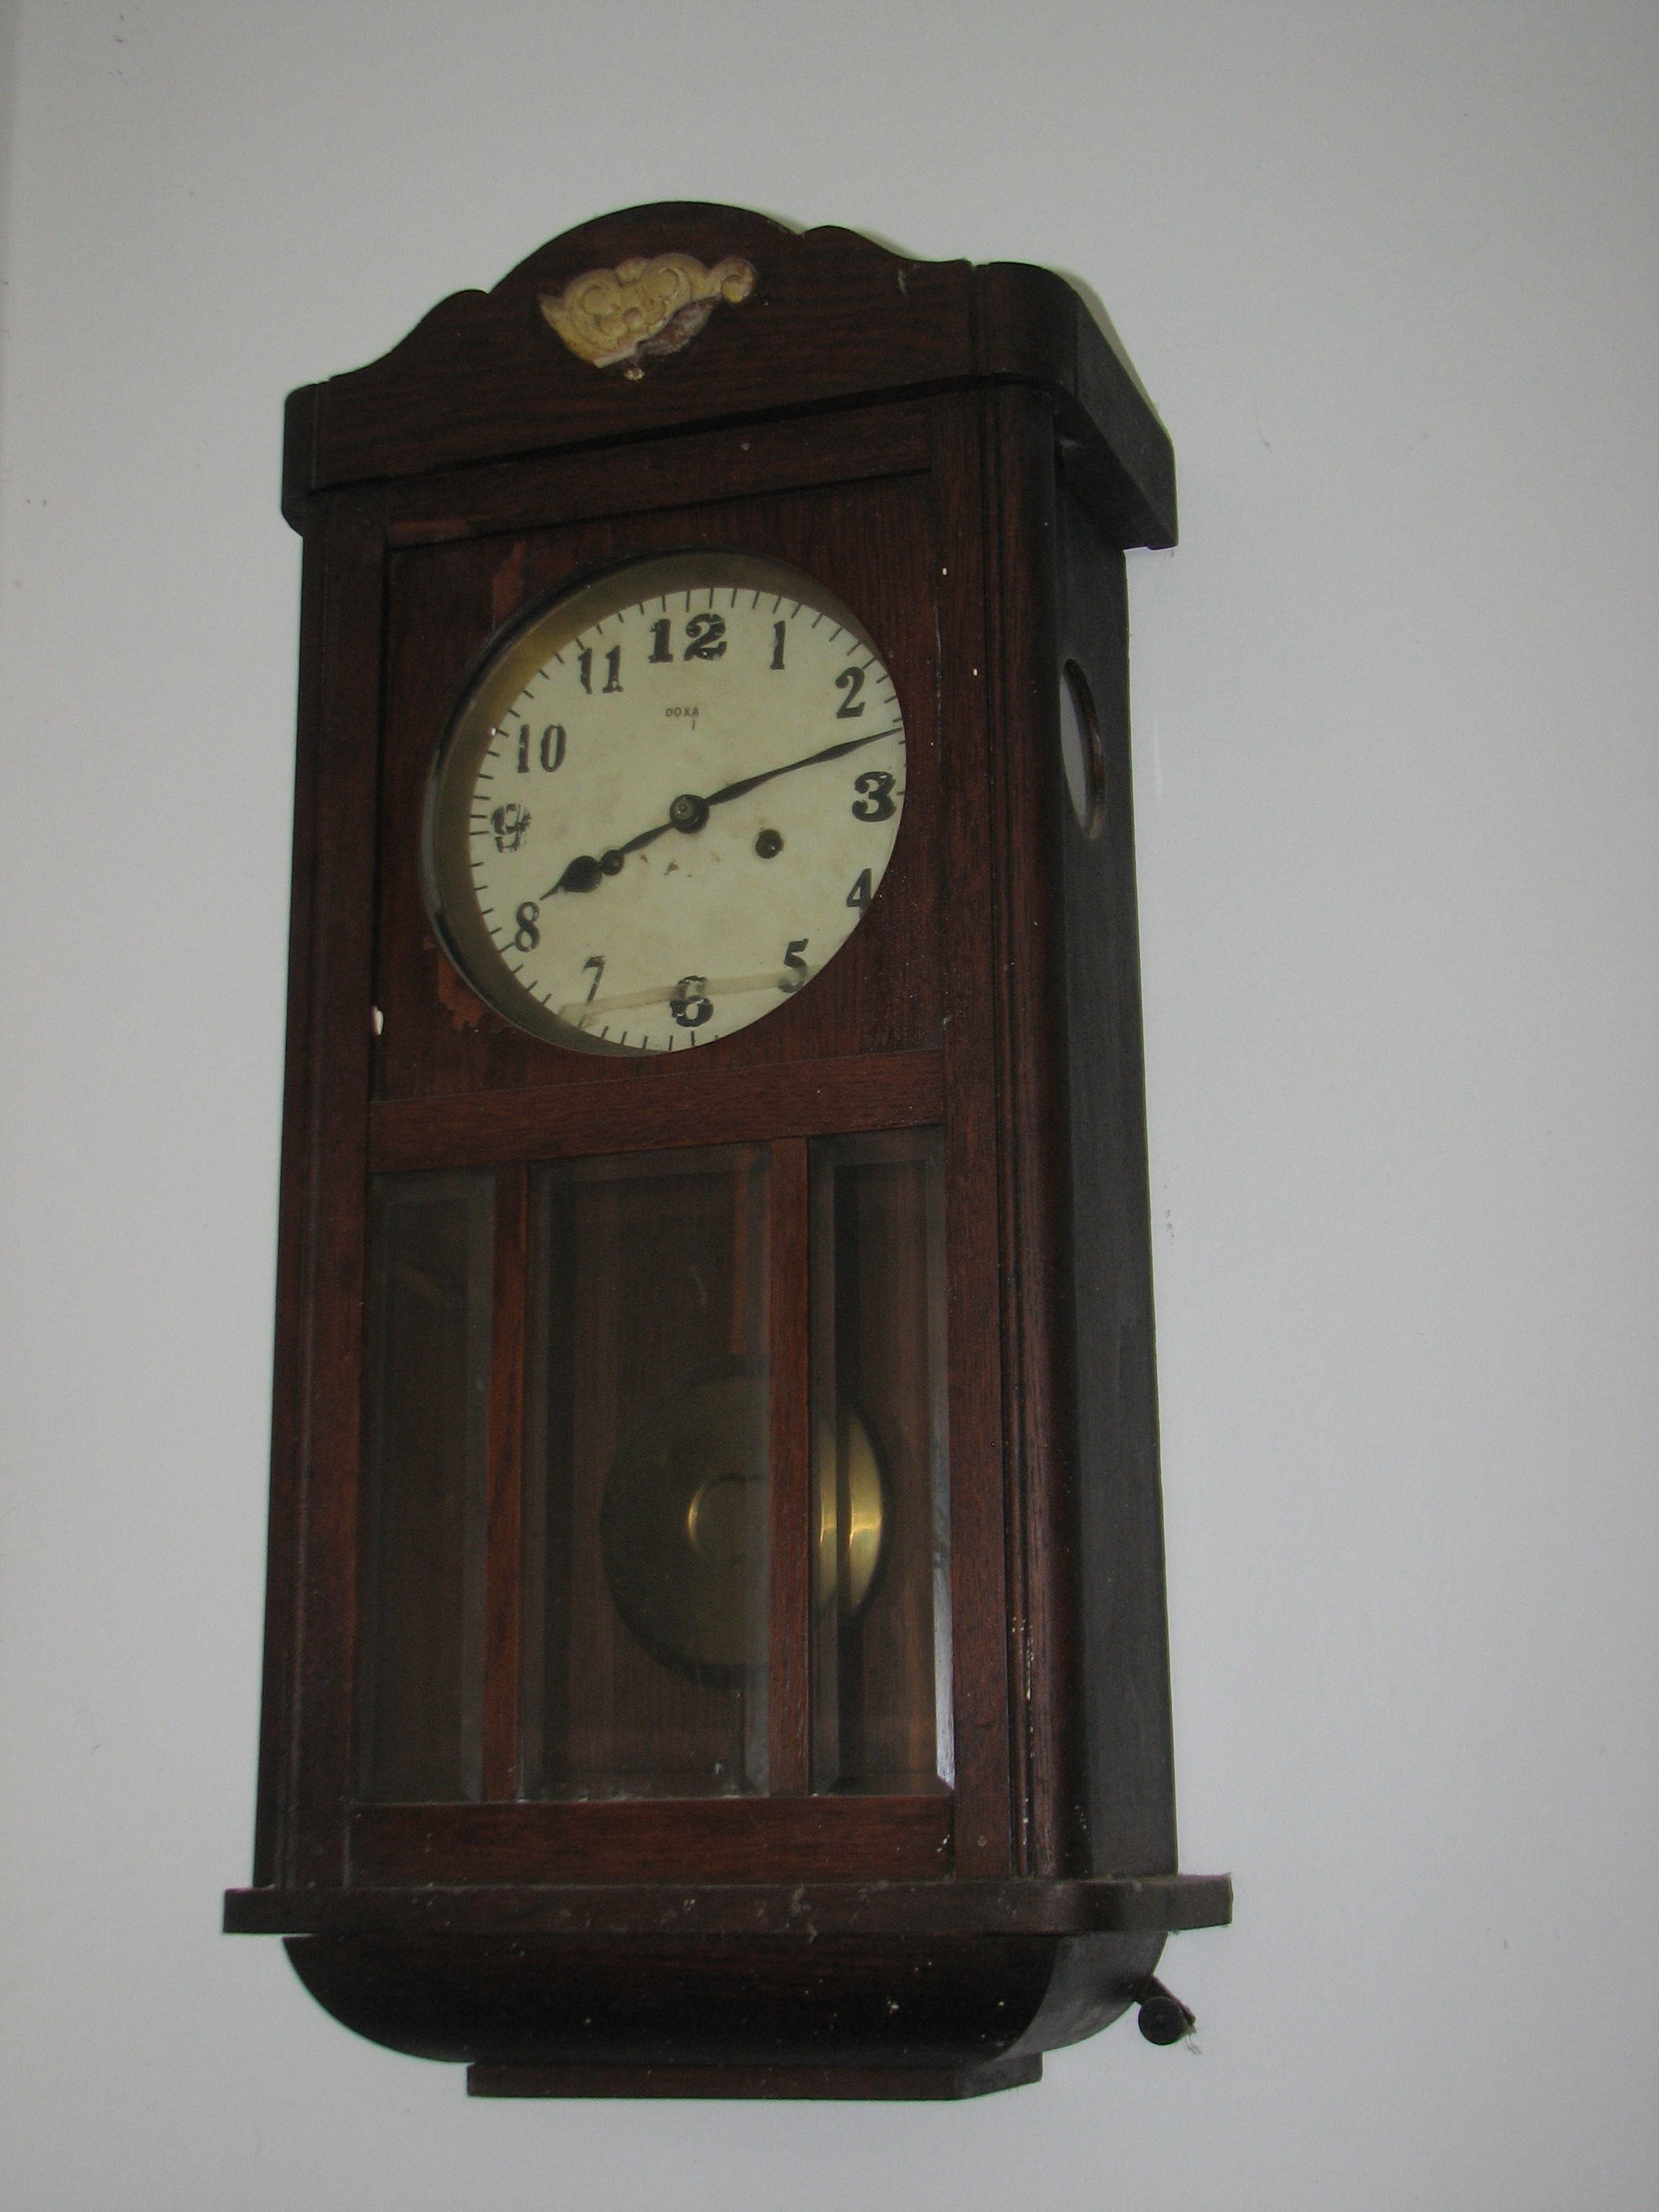 Large Vintage Wall Clocks For Sale : ori317710887835331128222IMG6577 from www.scrapinsider.com size 2112 x 2816 jpeg 1108kB